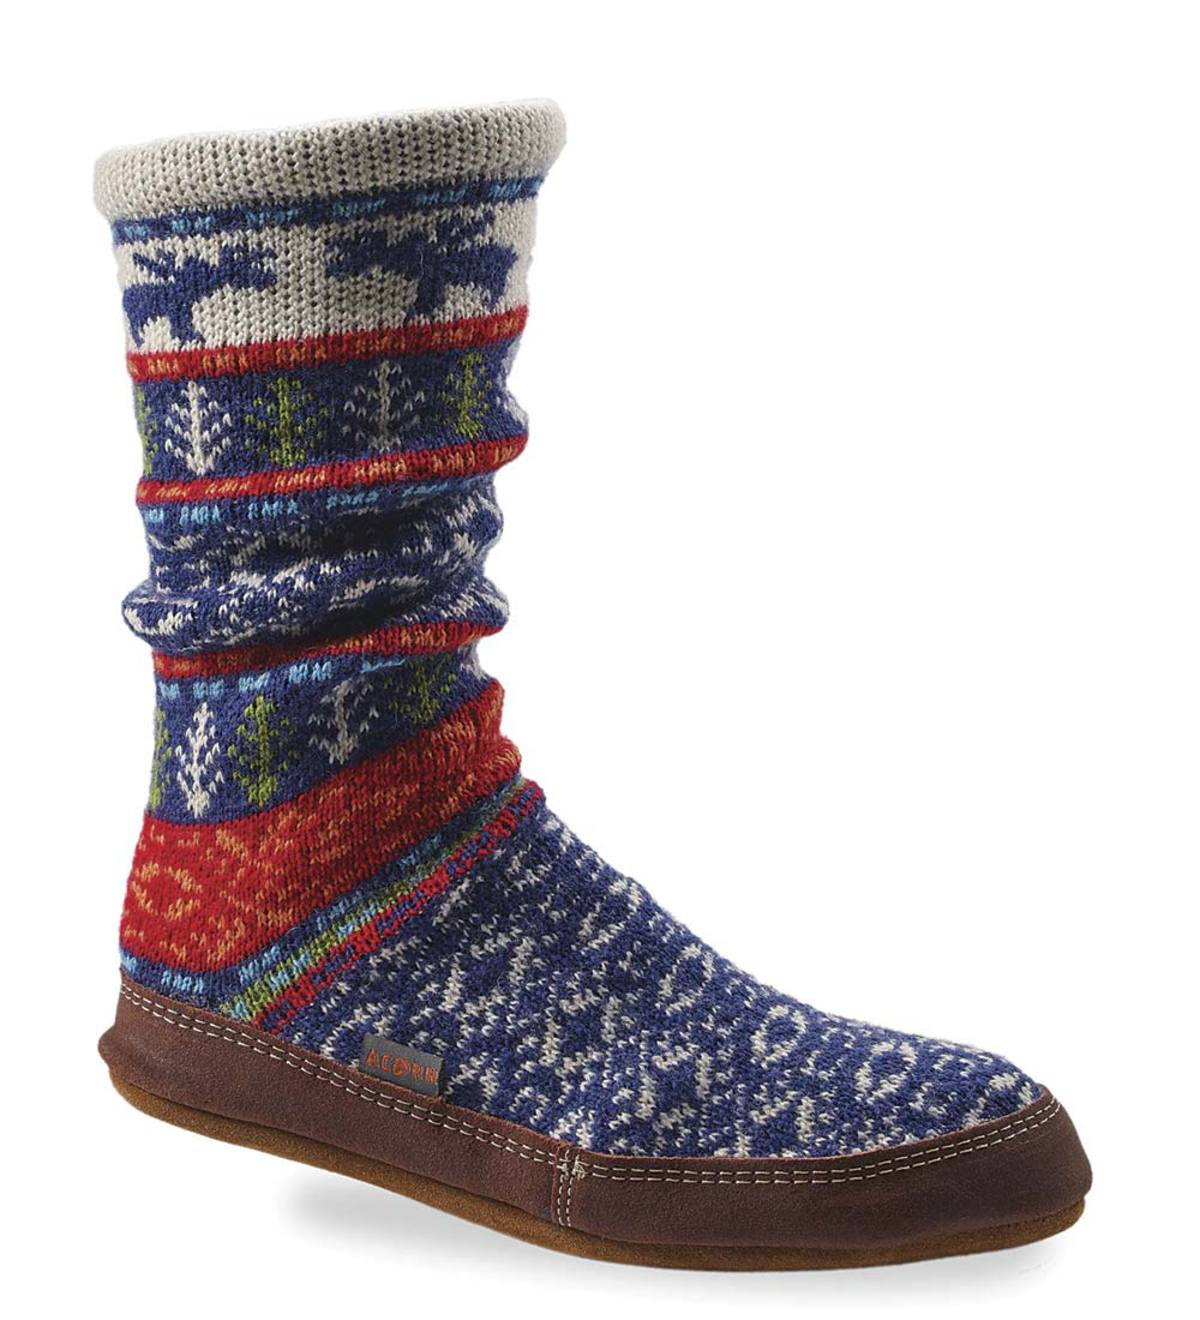 Acorn Slipper Socks in Maine Jacquard